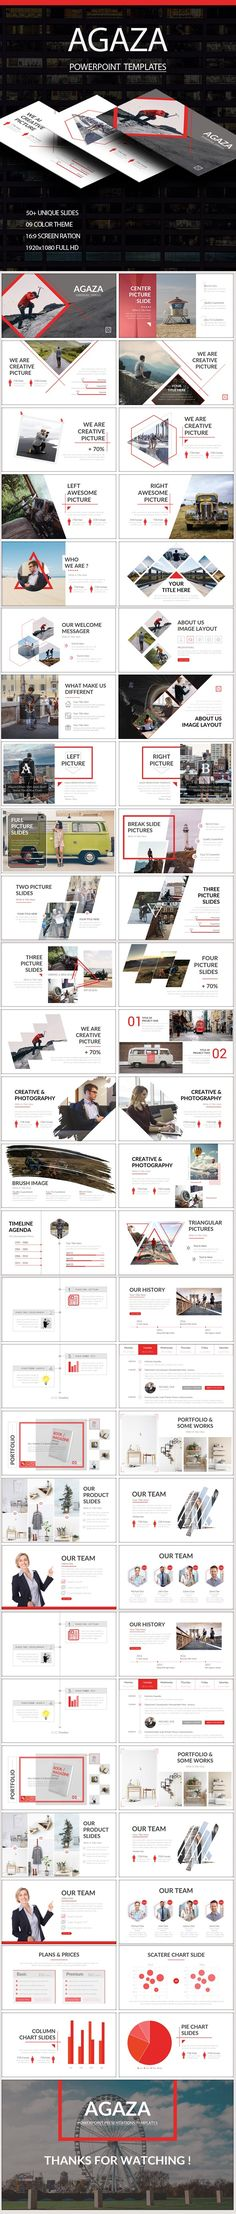 AGAZA PowerPoint Templates Template, Catalog layout and Brand manual - it manual templates to download